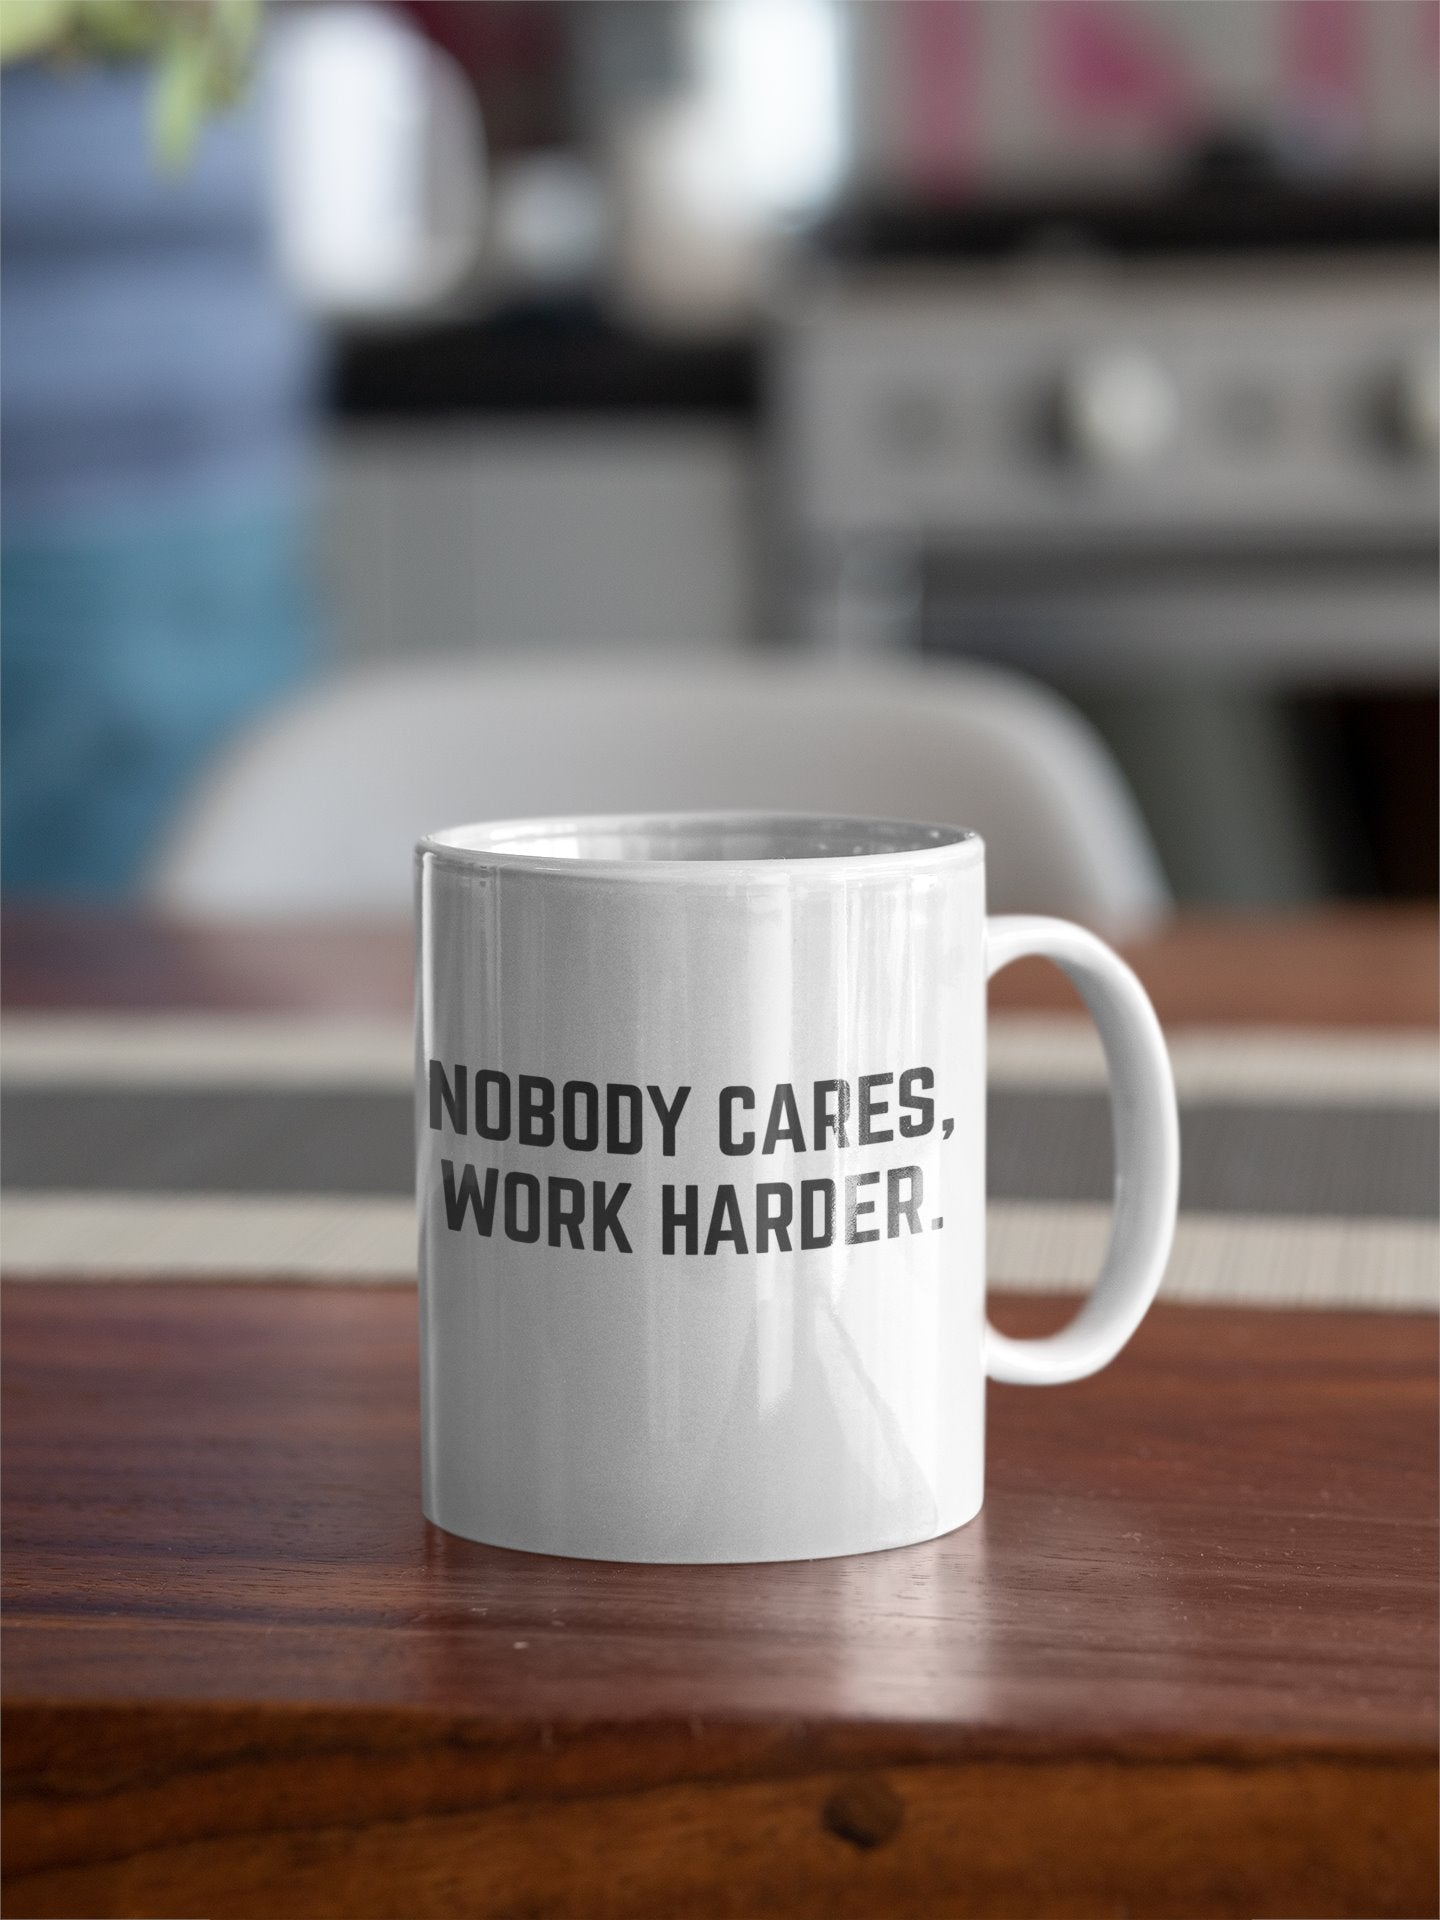 Nobody Cares, Work Harder Motivational White Coffee Mug - Snappy Creations